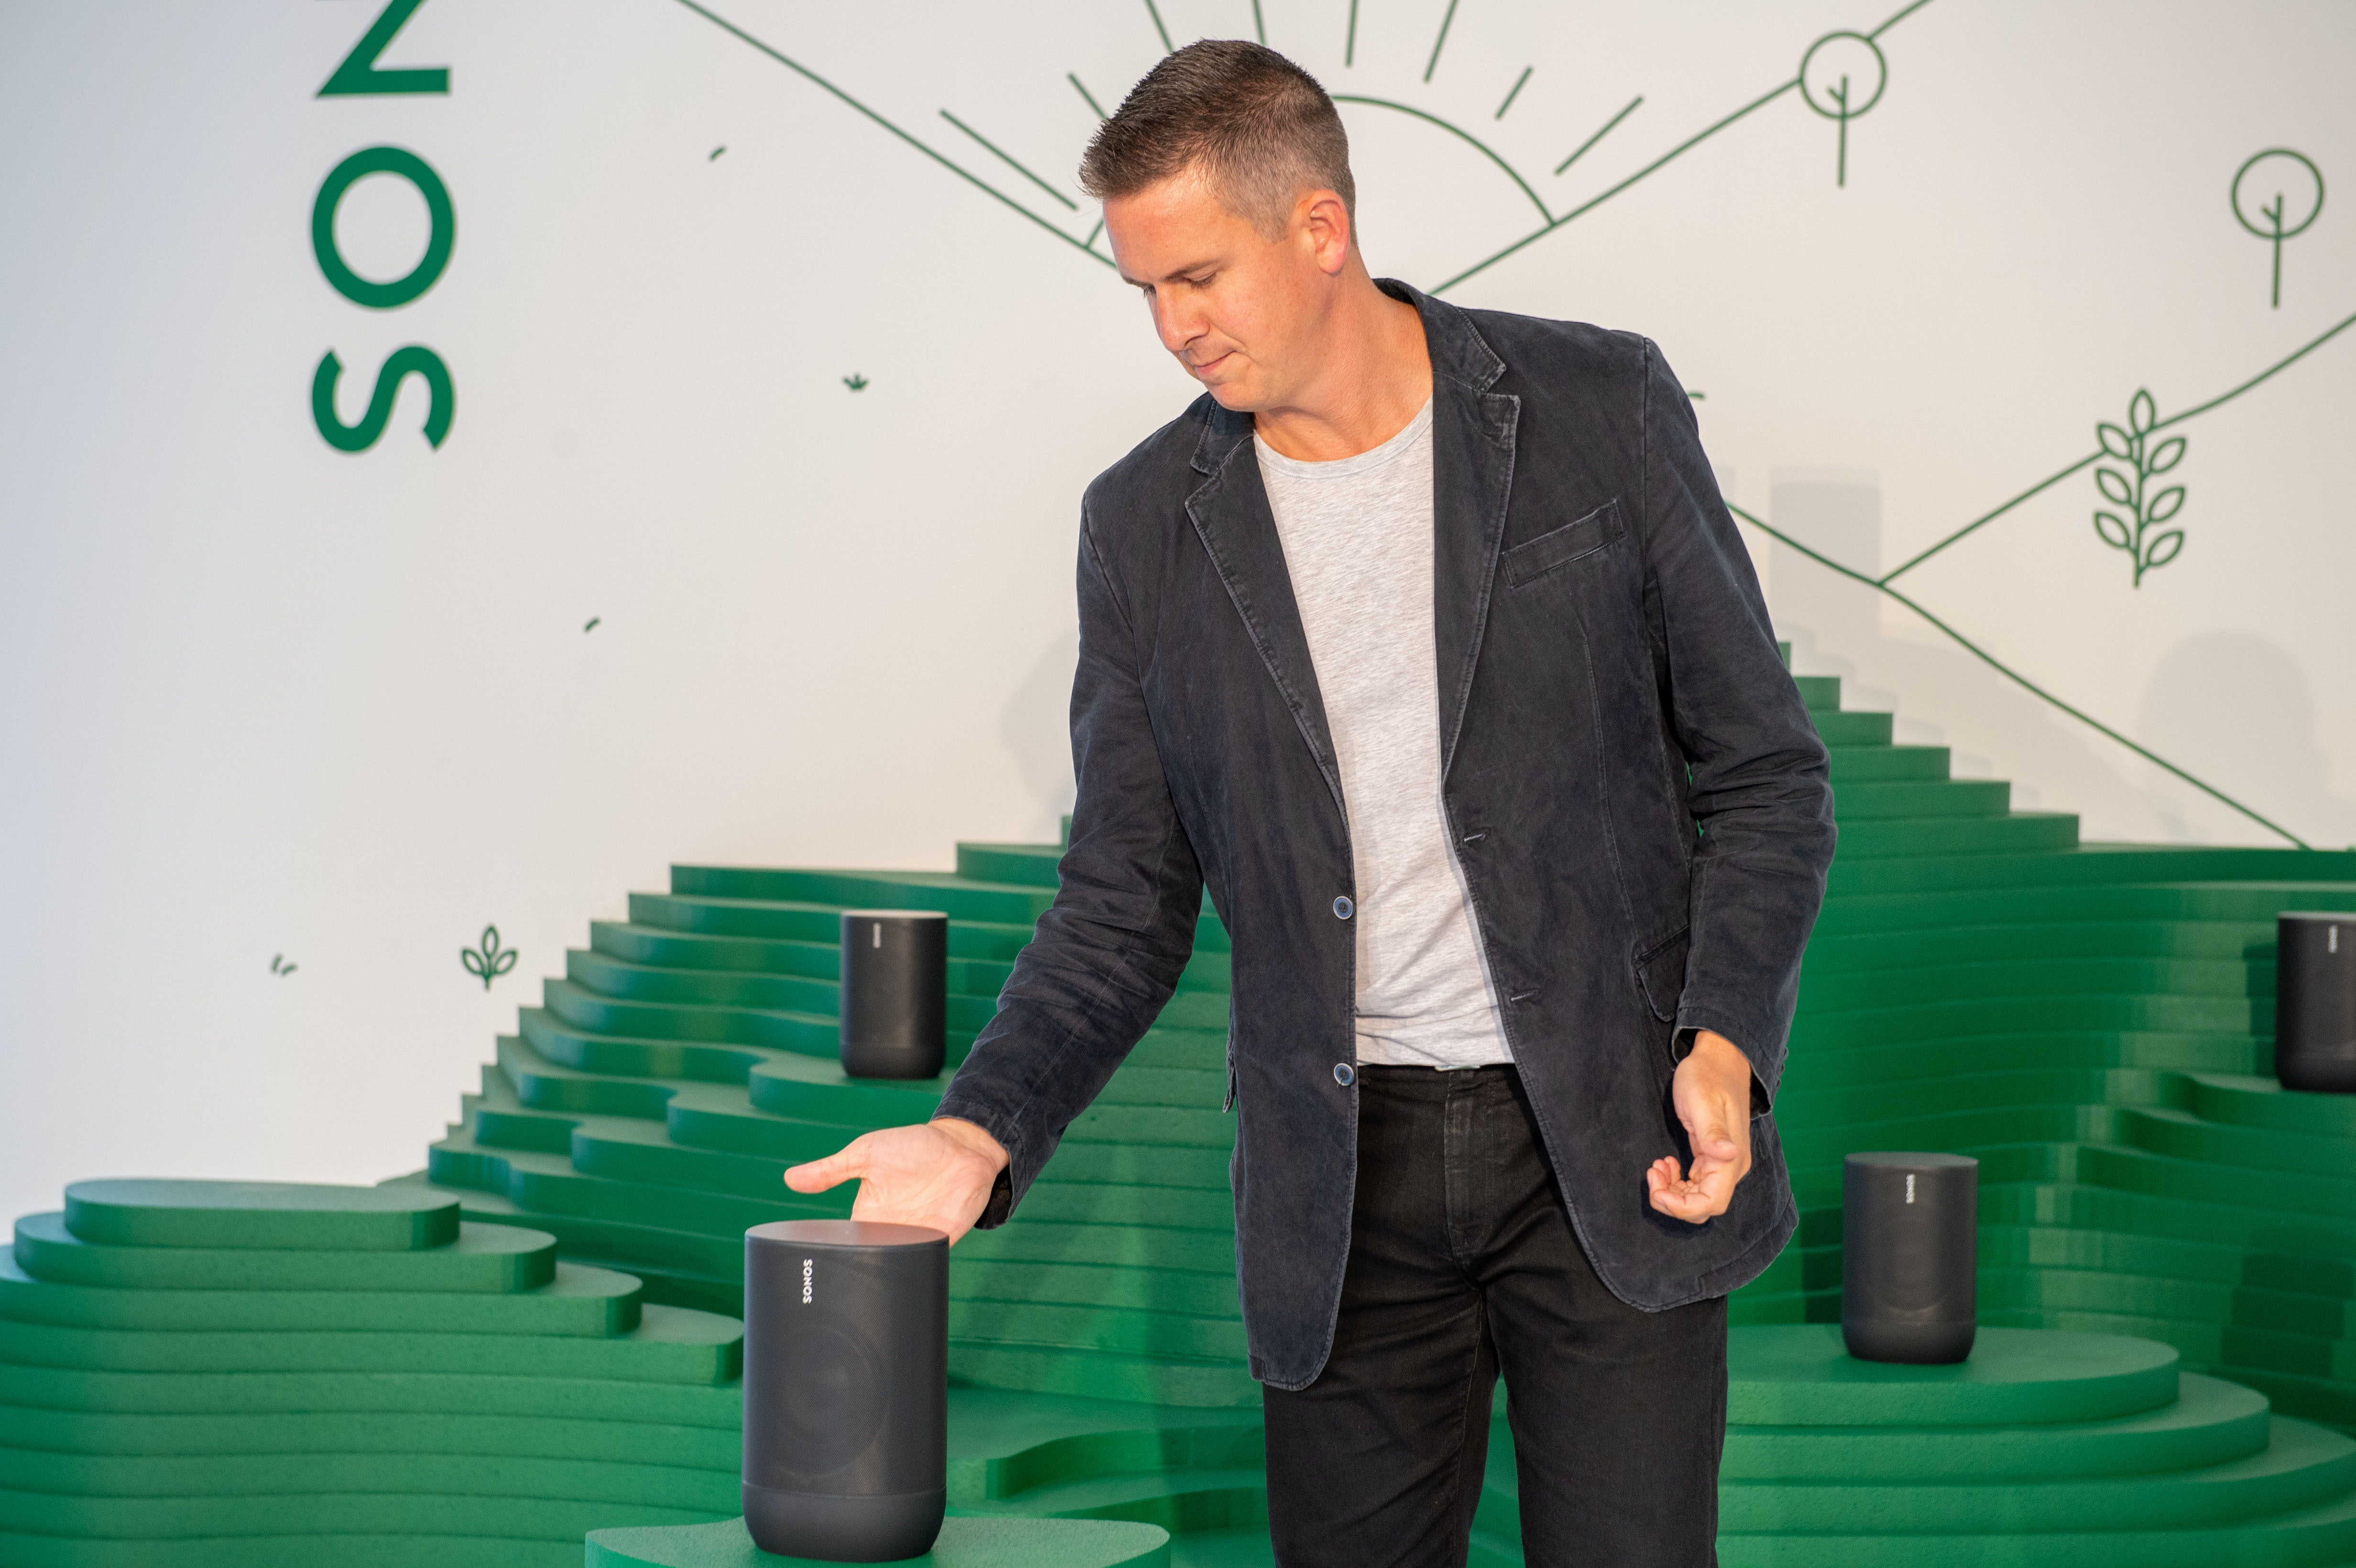 Sonos review scores have been collapsing since late December